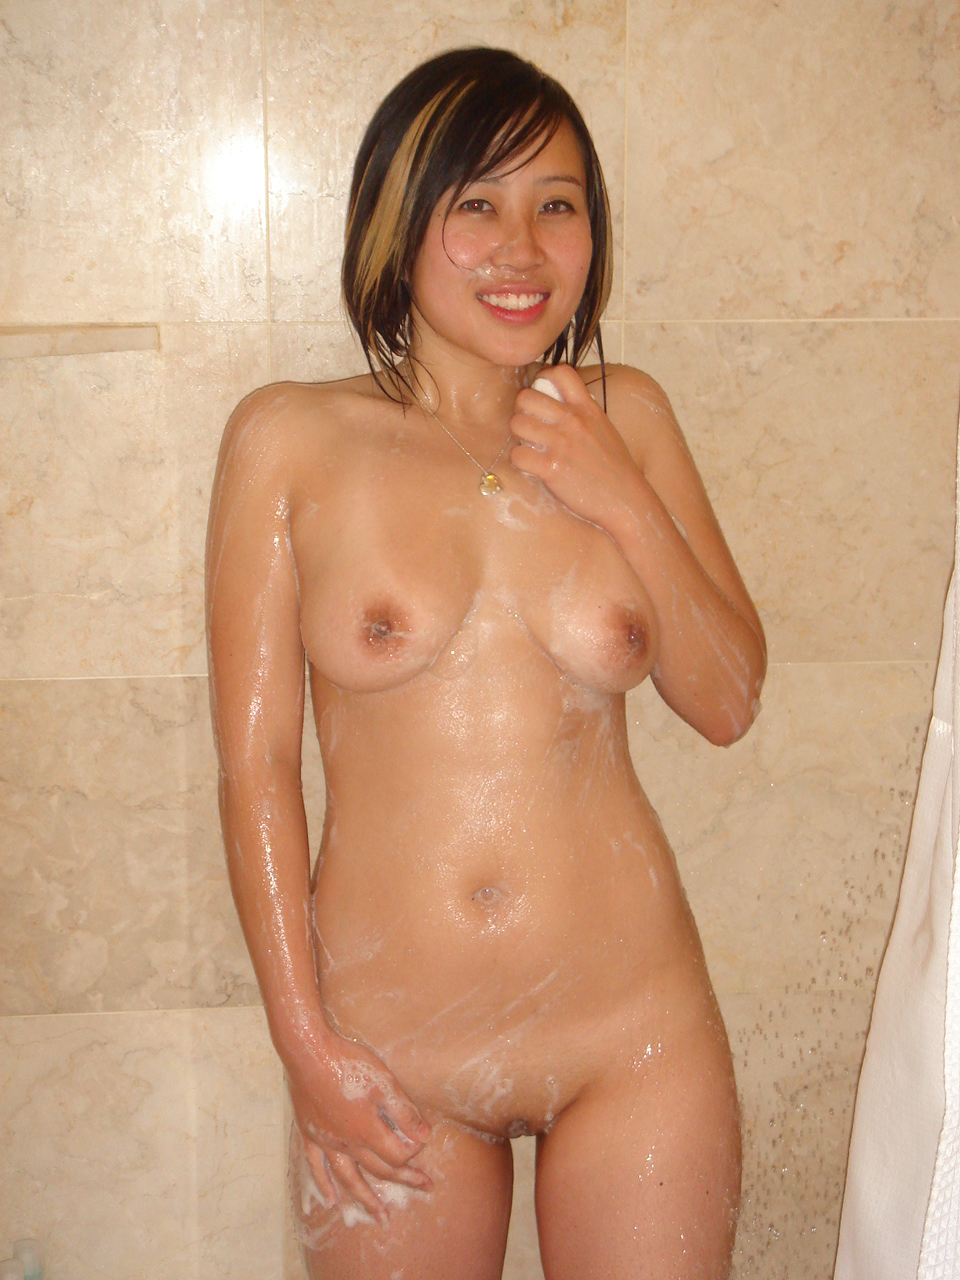 Remarkable, the JAPANESE SEXY GIRL NAKED SEX something also